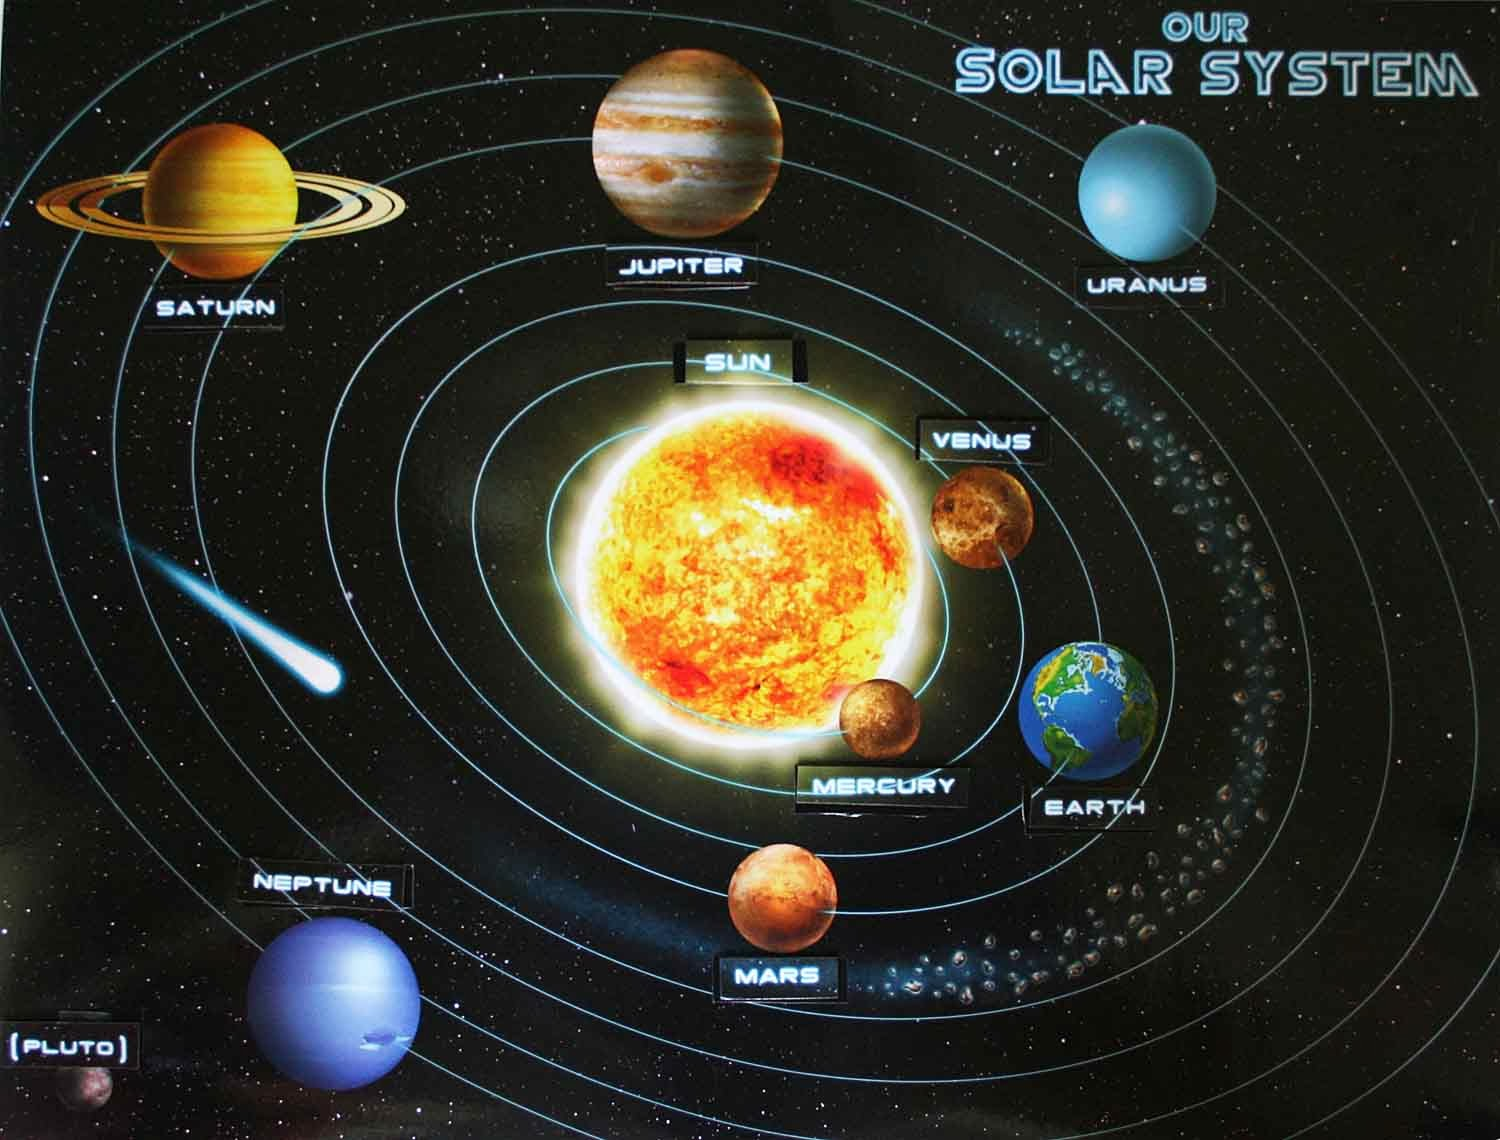 sun as center of solar system - photo #35